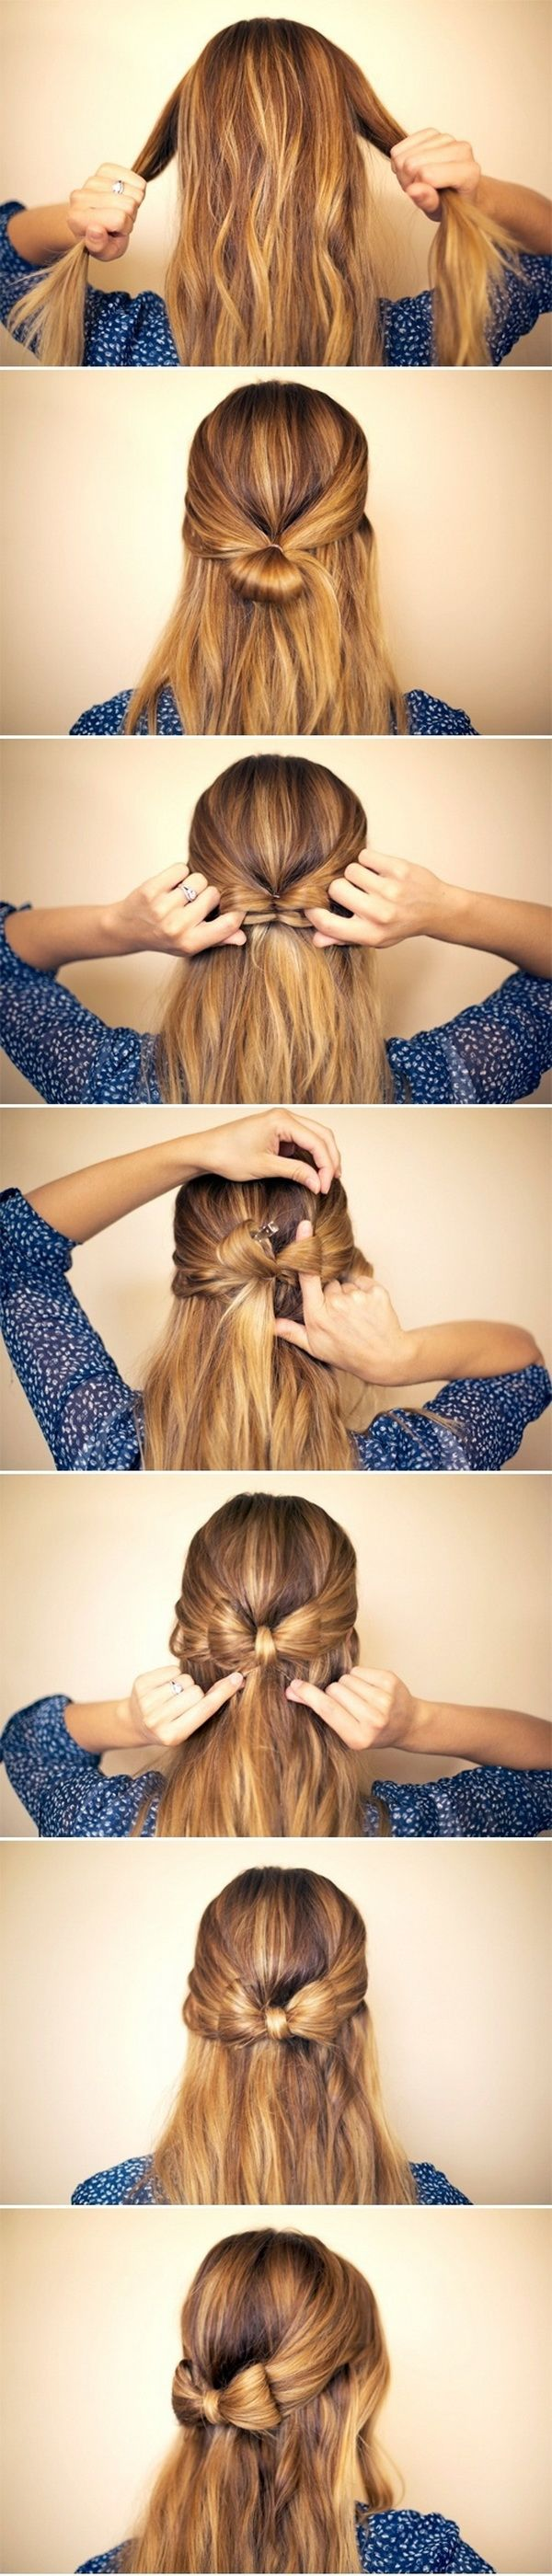 DIY half up half down wedding hairstyle with bow